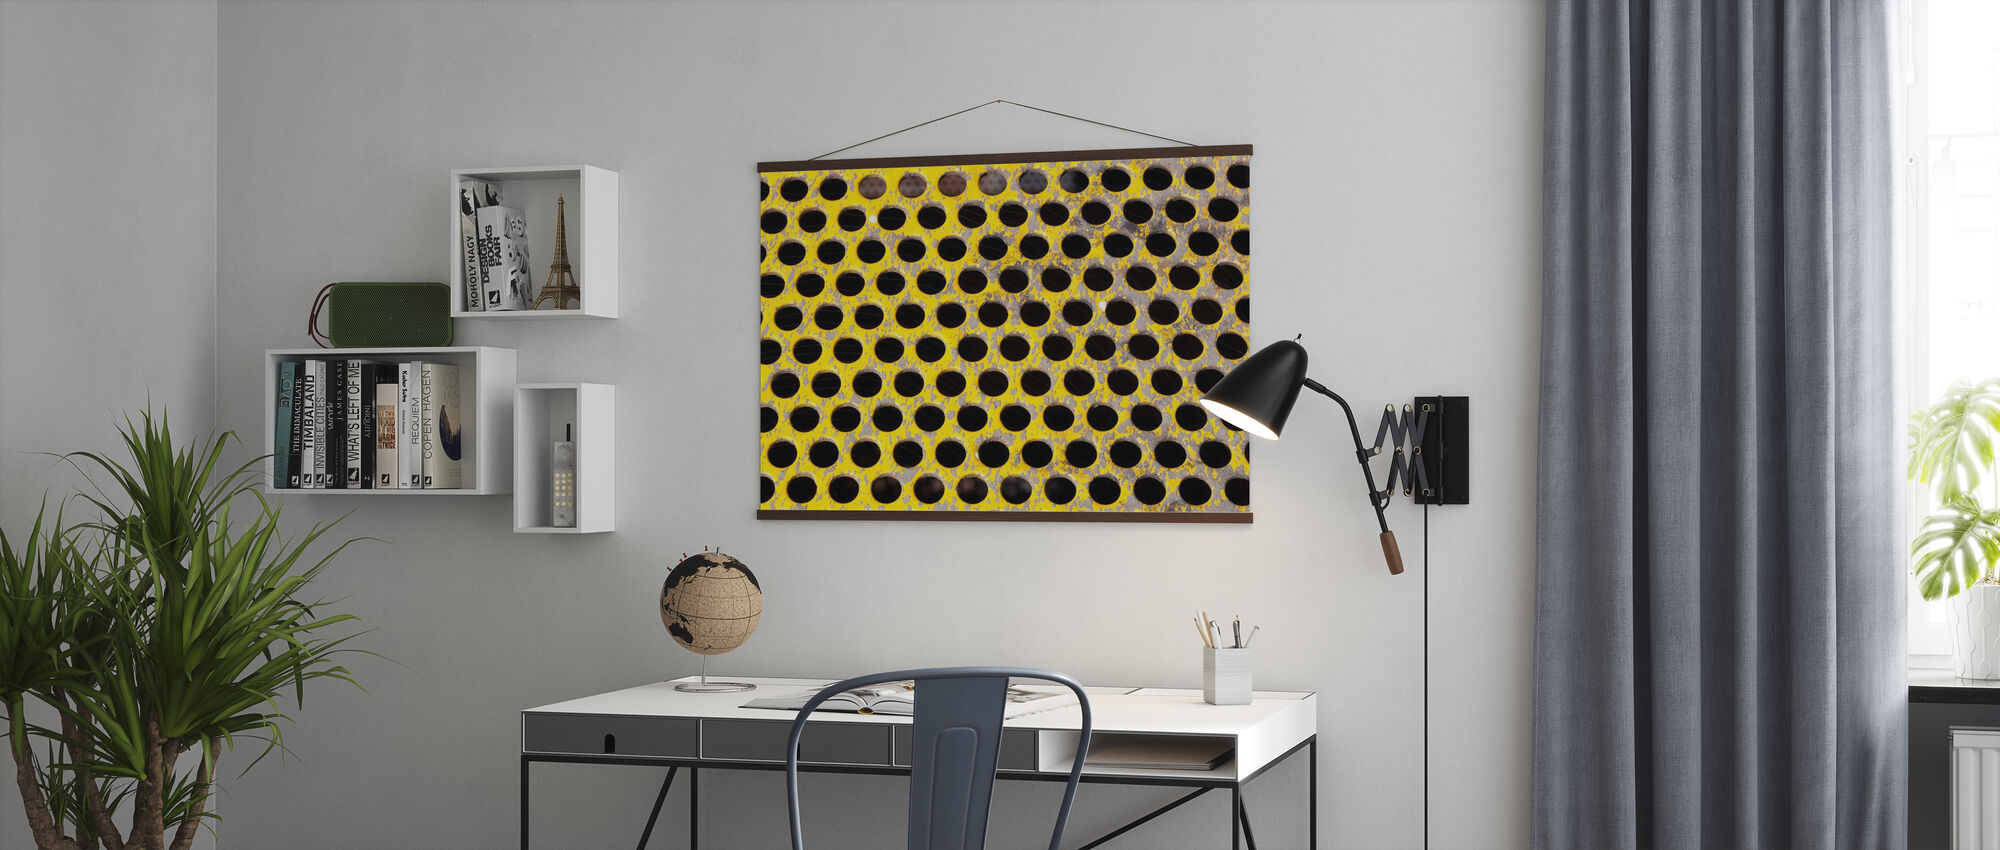 Old Perforated Metal Plate - Poster - Office